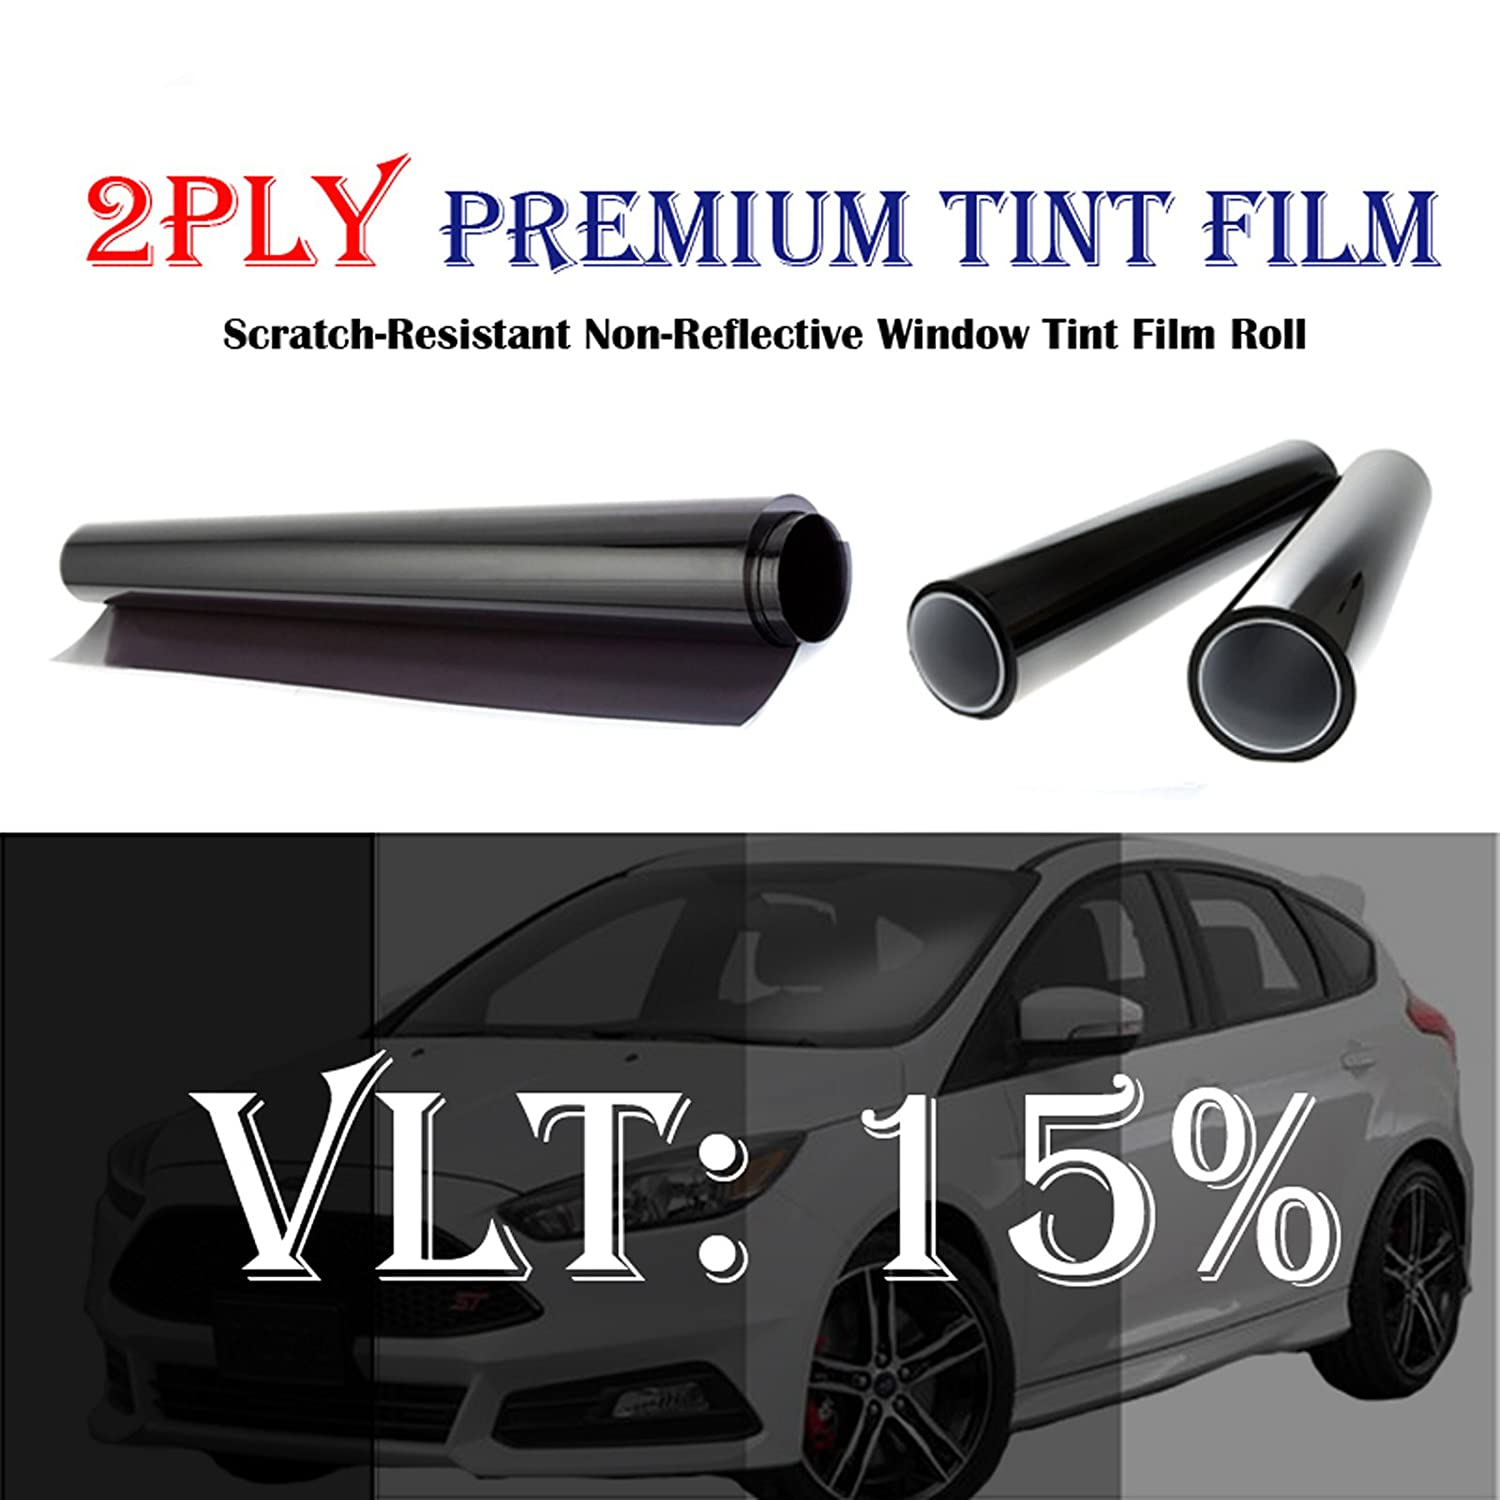 2PLY 1.5 mil Premium 15% VLT 36 In x 5 Ft (36 x 60 Inch) Feet Uncut Roll Window Tint Film Auto Car Home mkbrother